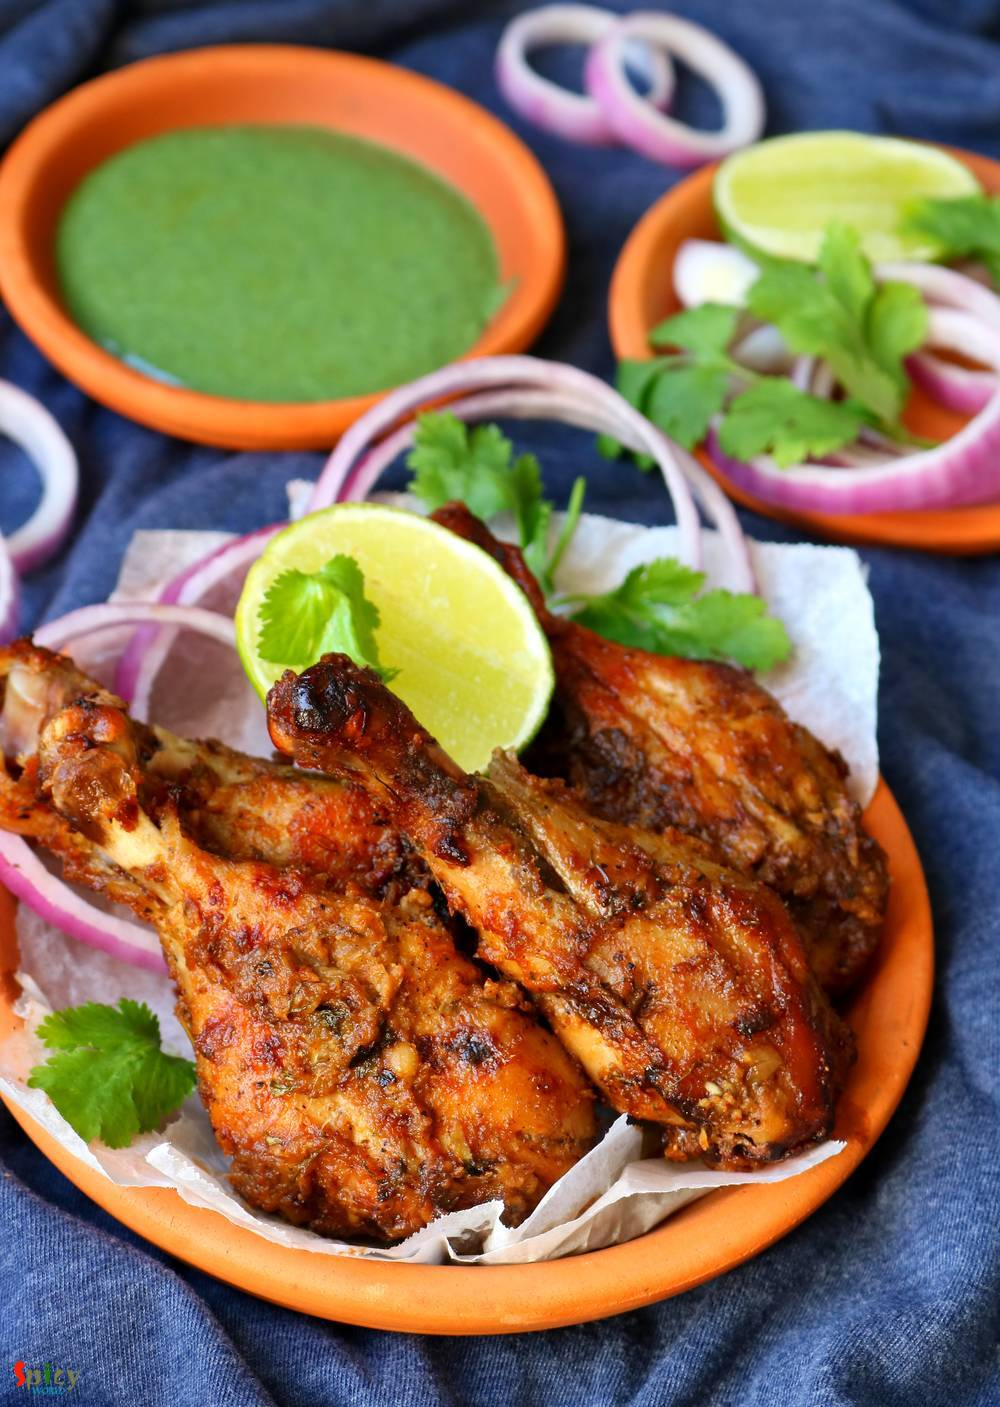 Bhatti Ka Murgh Spicy World Simple And Easy Recipes By